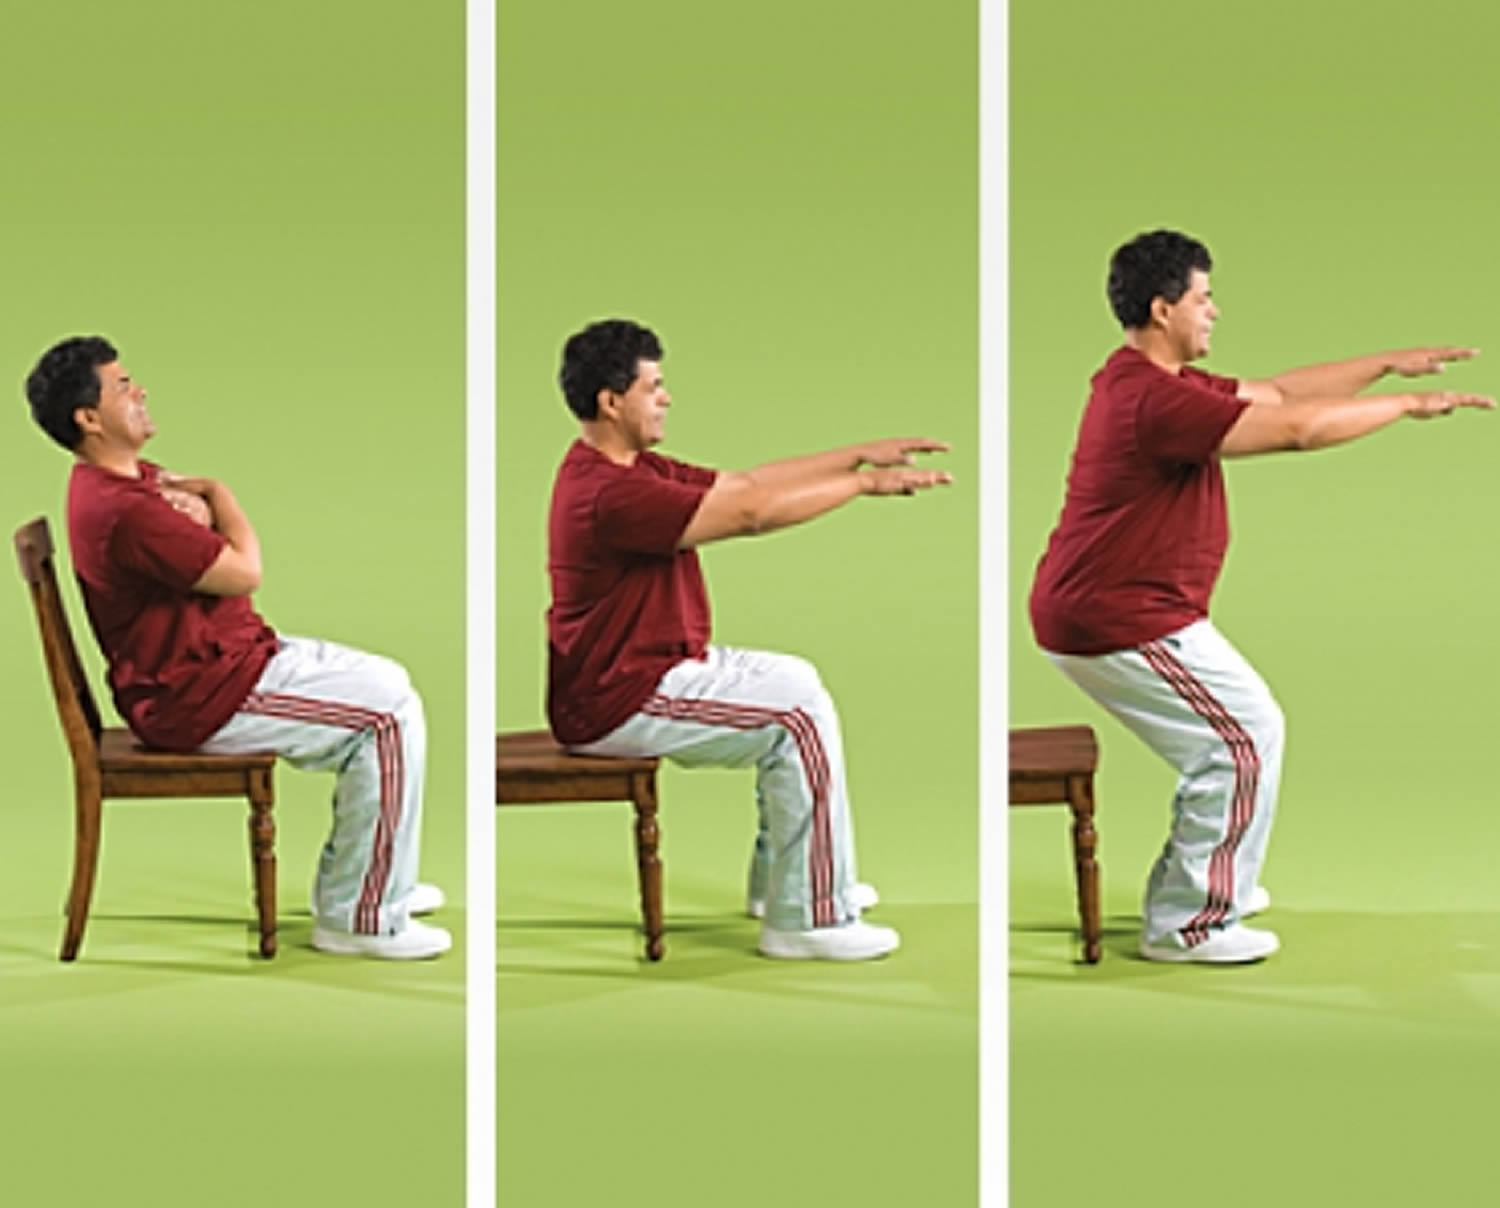 Chair Stand Strength Exercise for Seniors